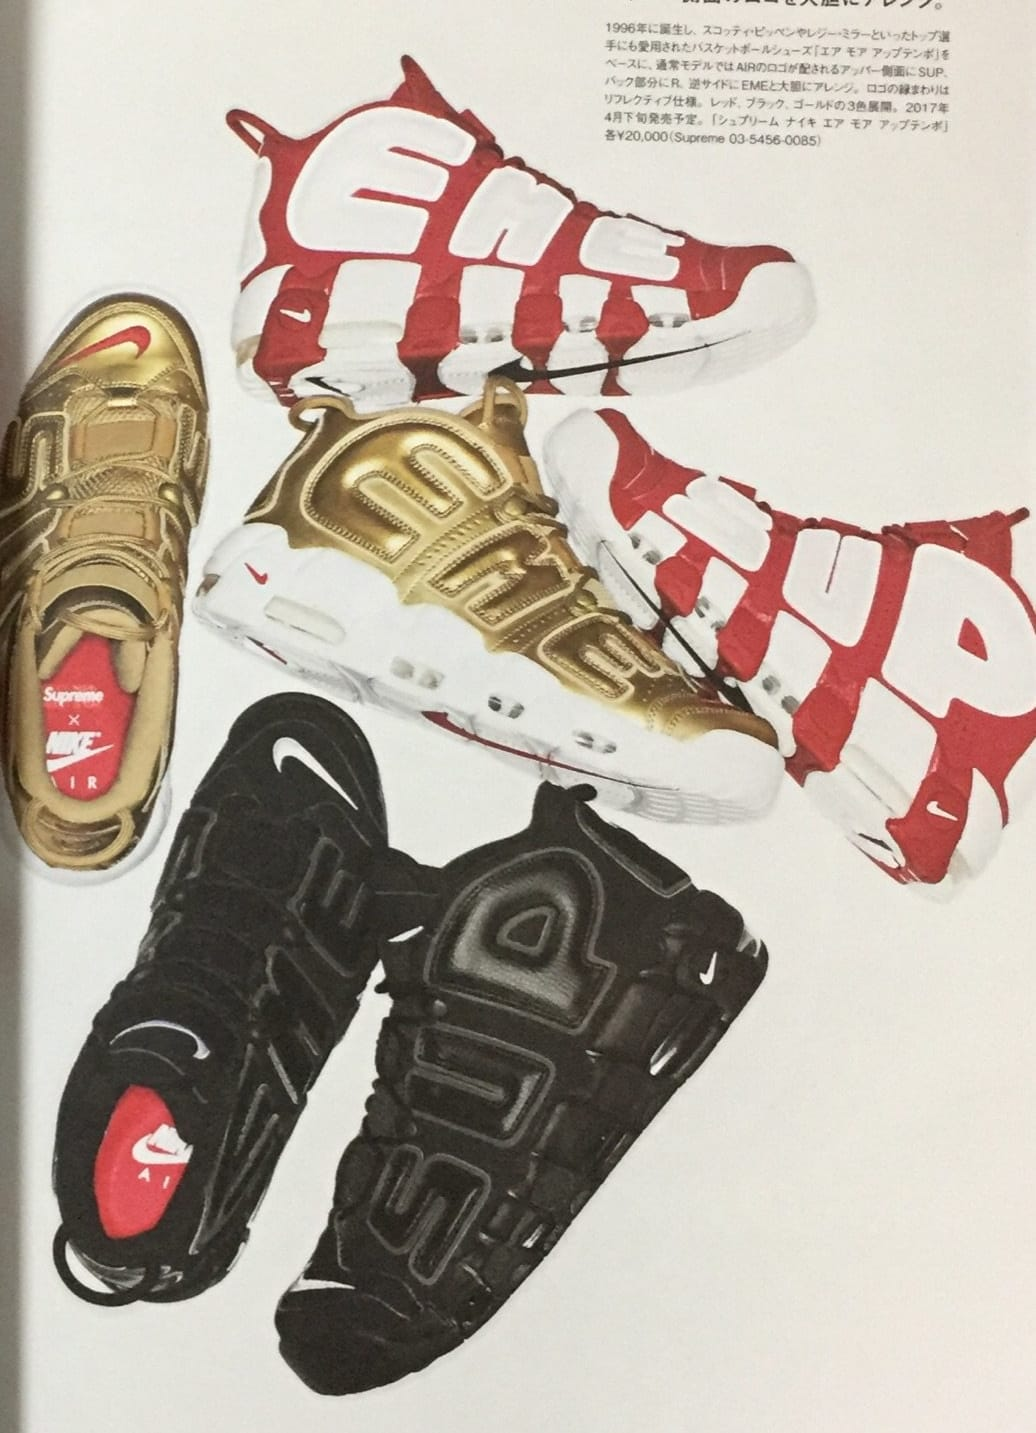 Supreme x Nike Air More Uptempo Shoes Master (3)